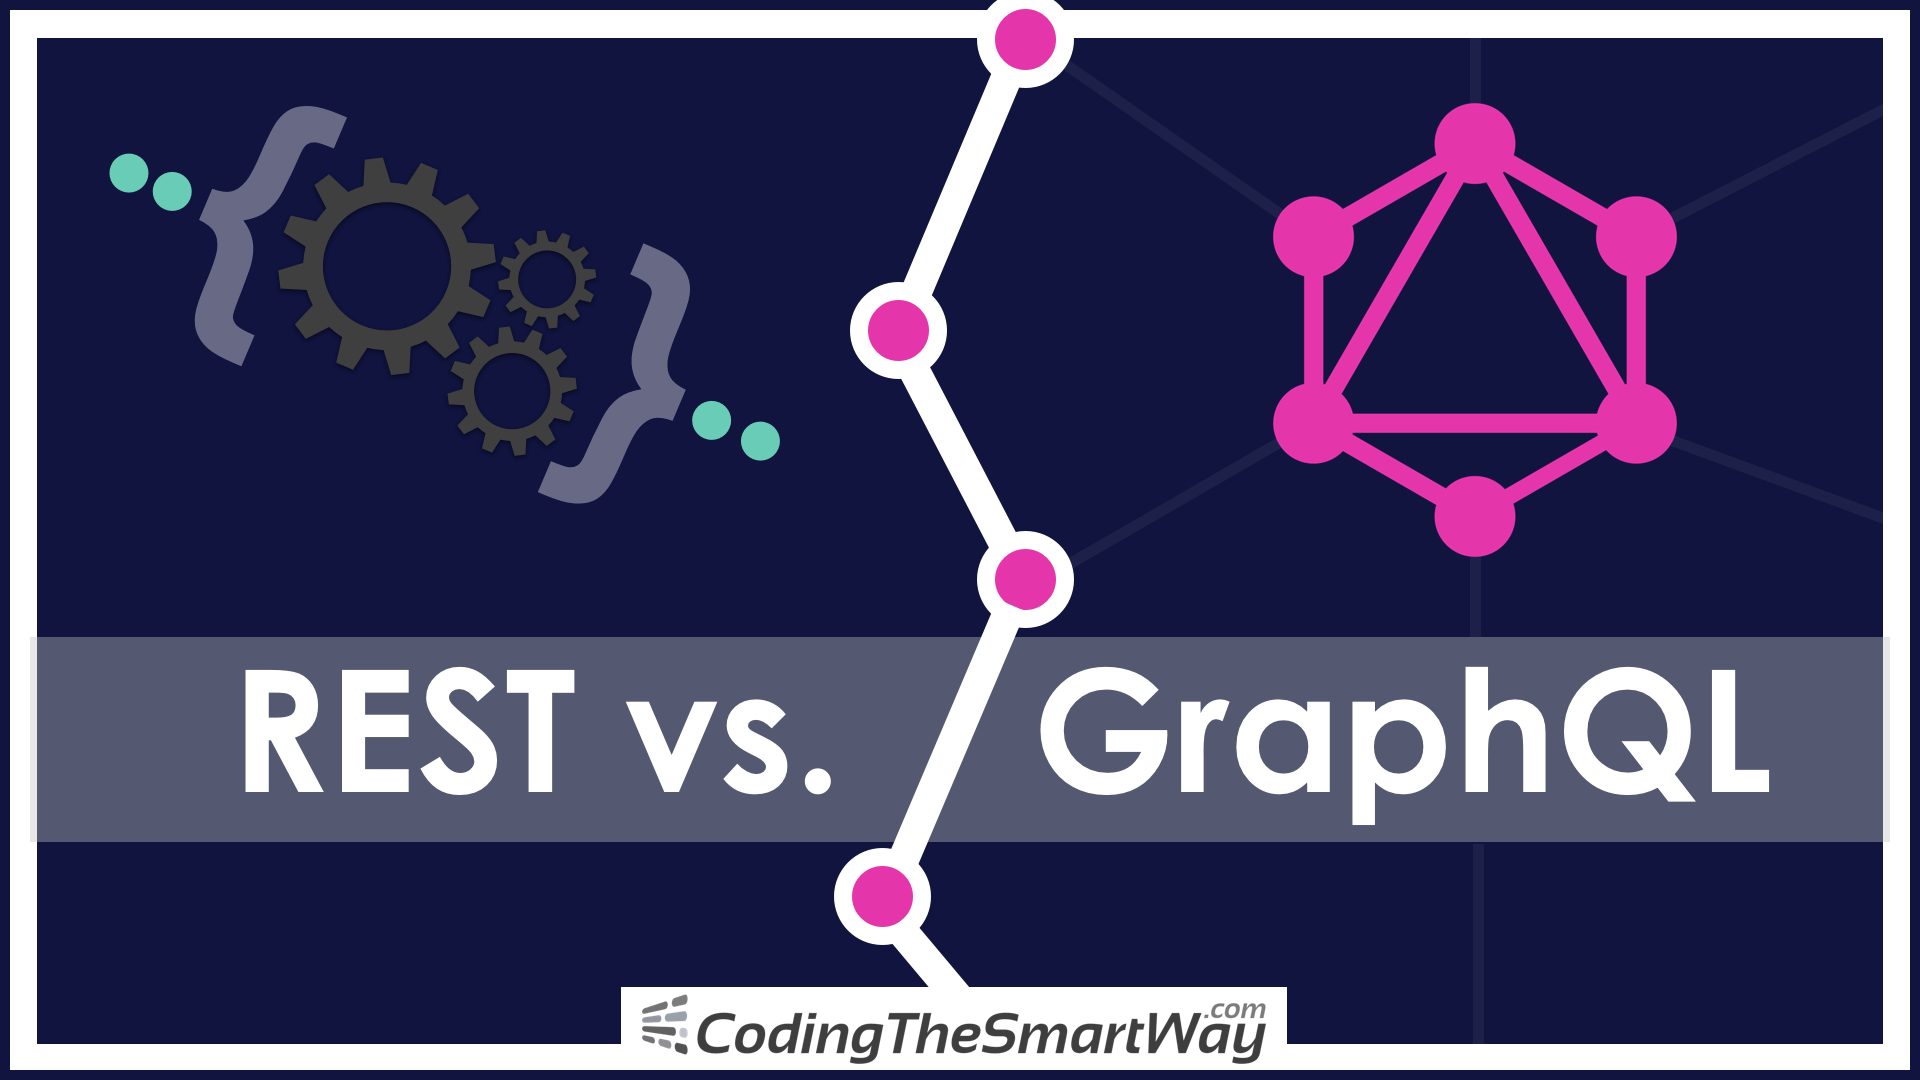 / Vs Rest Vs Graphql Codingthesmartway Blog Medium